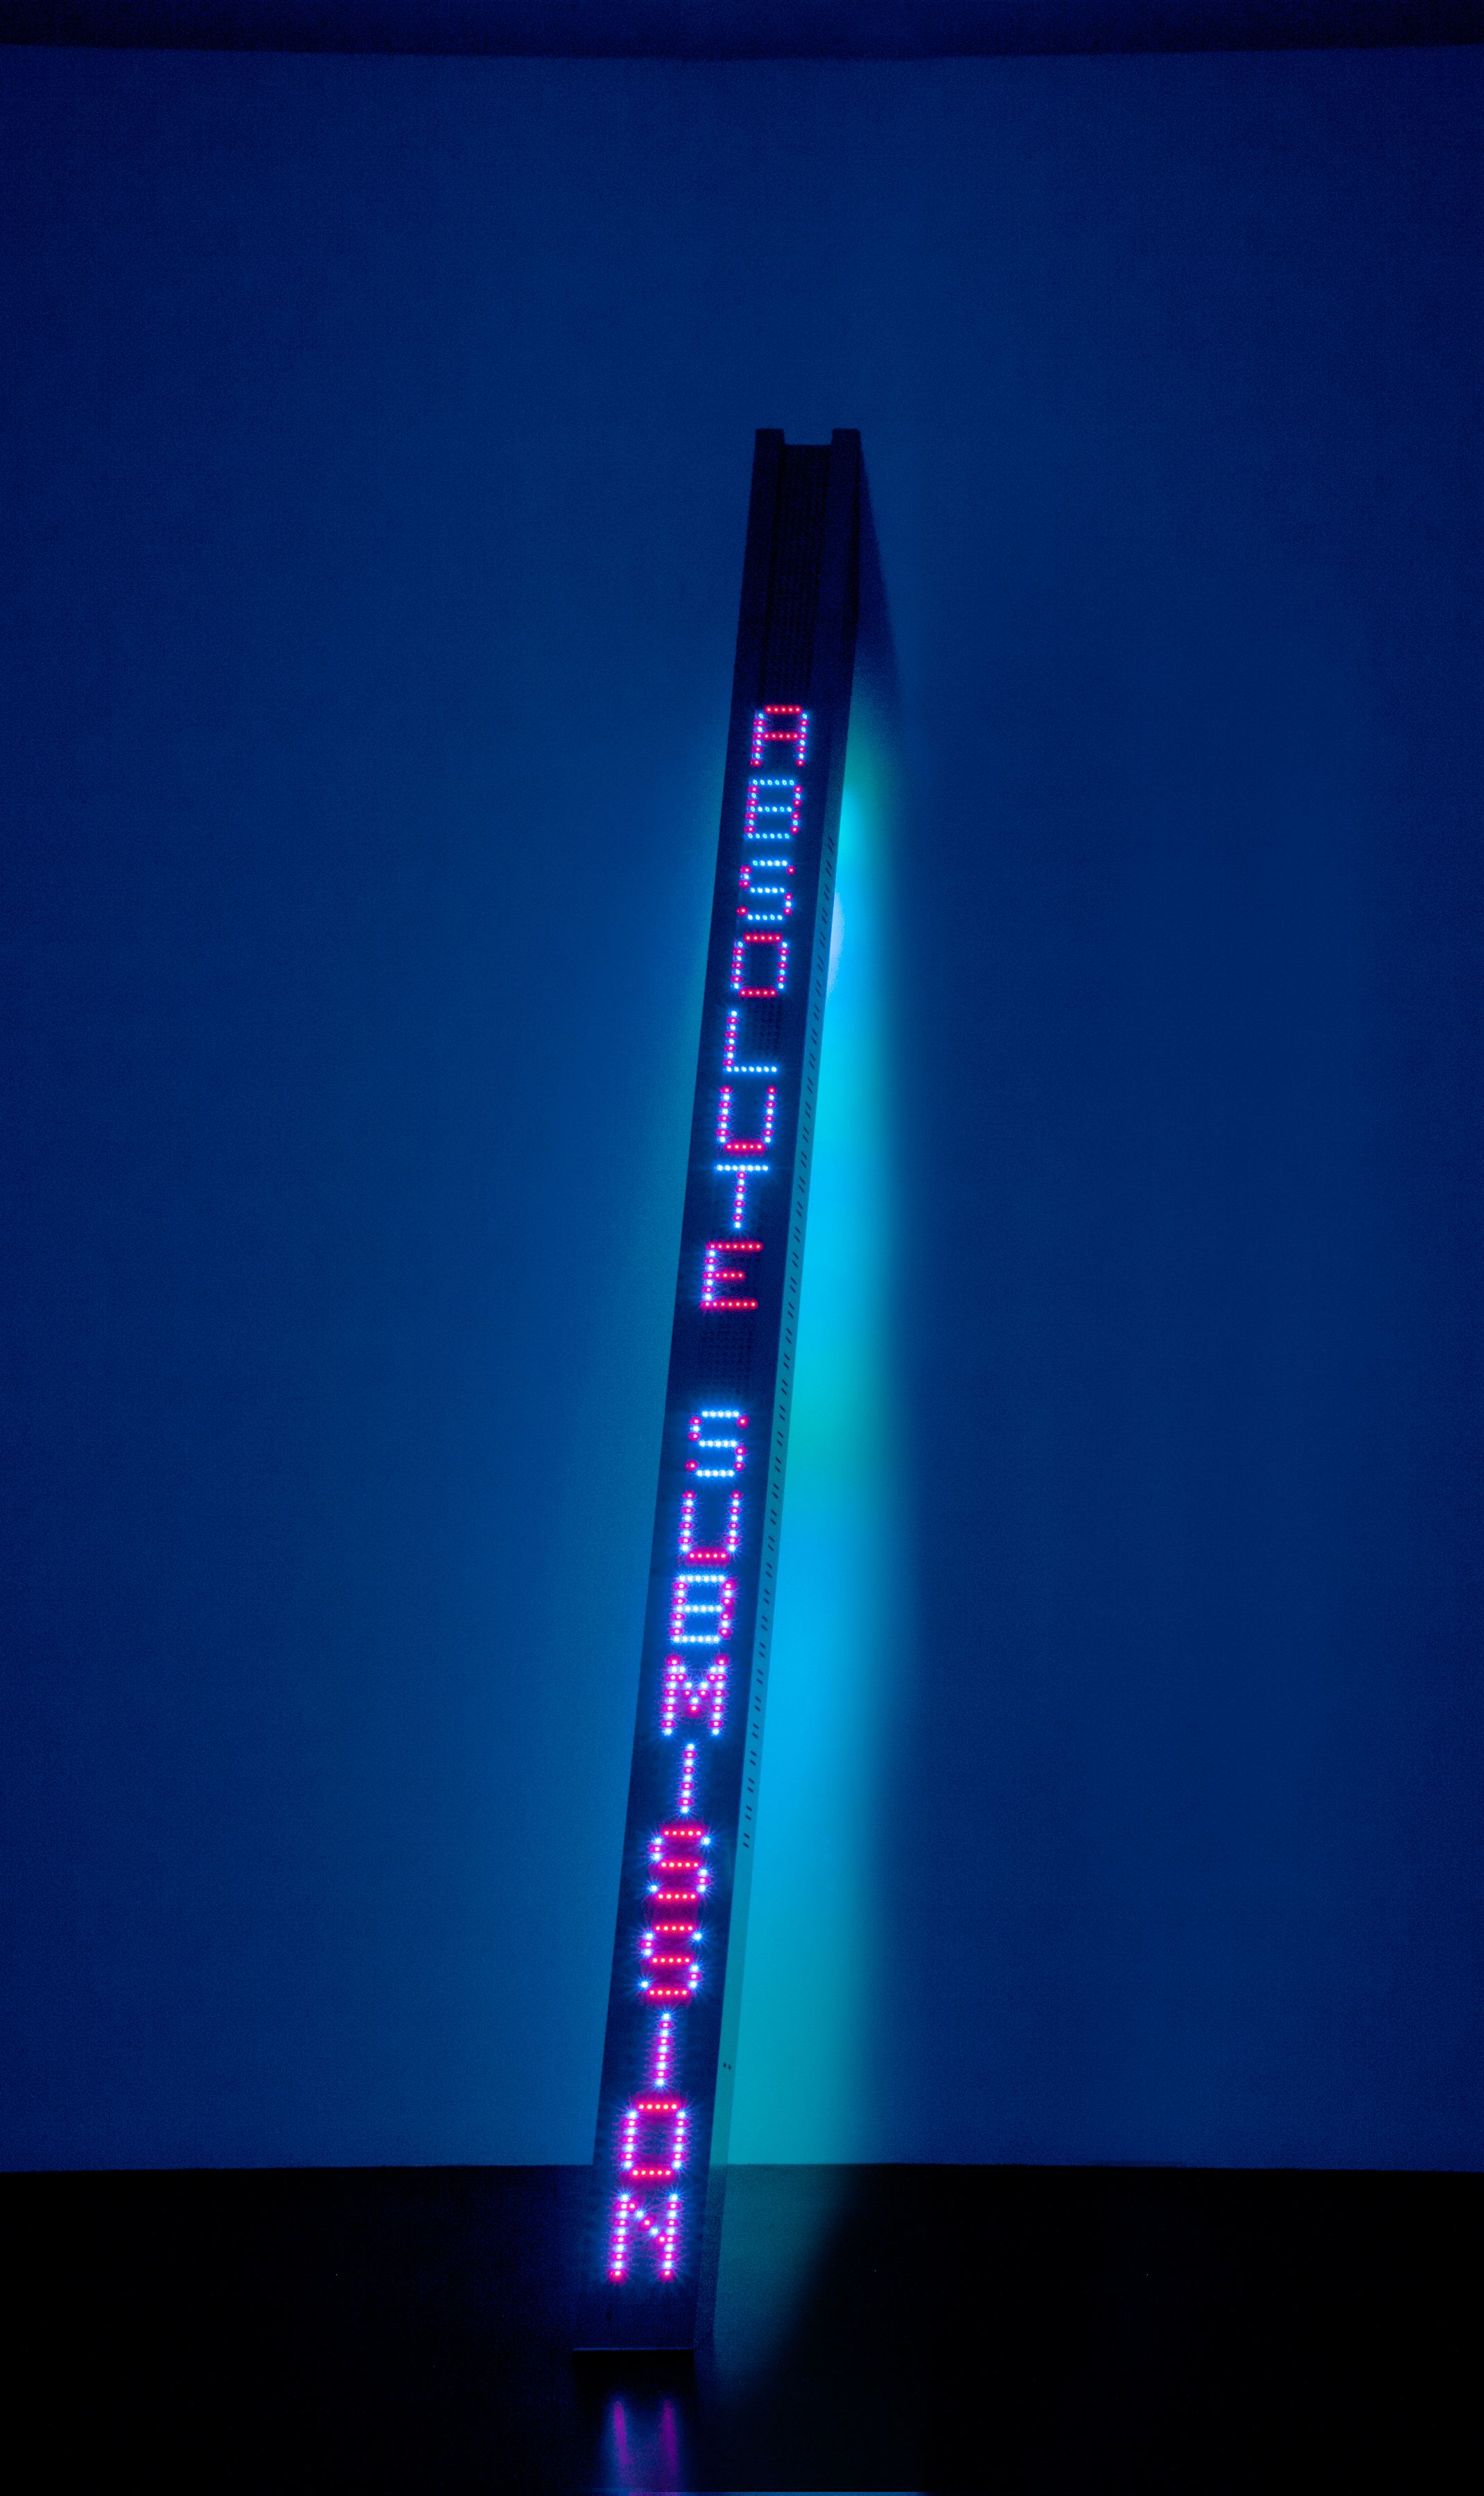 Jenny Holzer New Tilt, 2011 vertical, tilted, double-sided LED sign with blue and red diodes on front and blue and green diodes on back, stainless steel housing 9 feet 3 1/2 inches x 6 inches x 3 5/8 inches © Jenny Holzer. Courtesy Artist Rights Society (ARS) and Cheim & Read, New York.